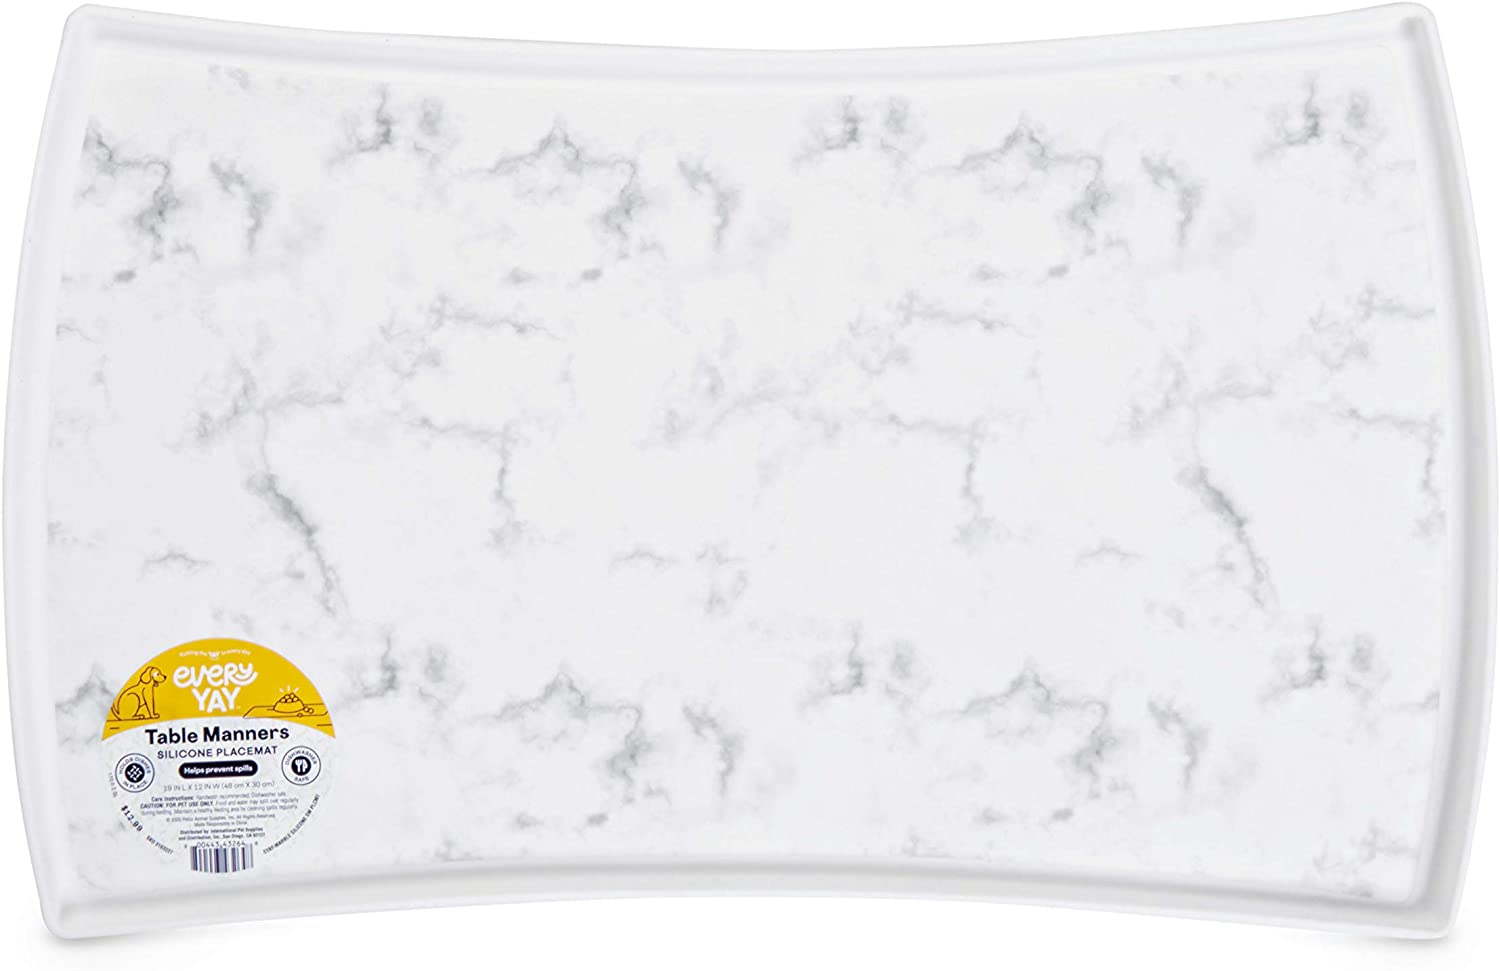 Kitchen Dining Everyyay Table Manners Marble Print Silicone Placemat For Pets Small White